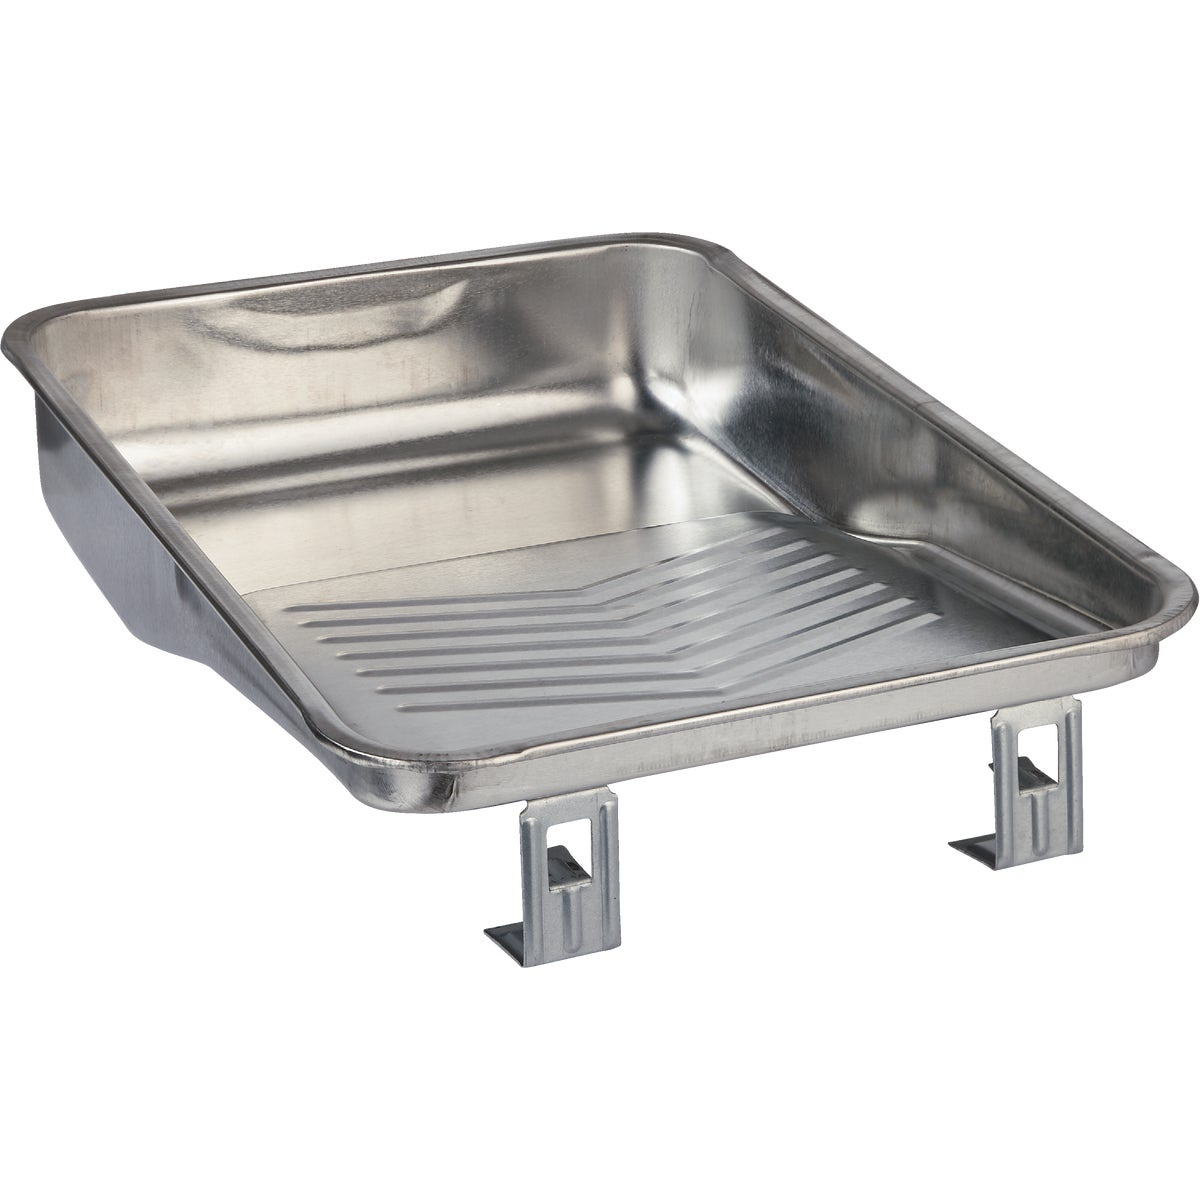 "9"" DEEPWELL METAL TRAY"